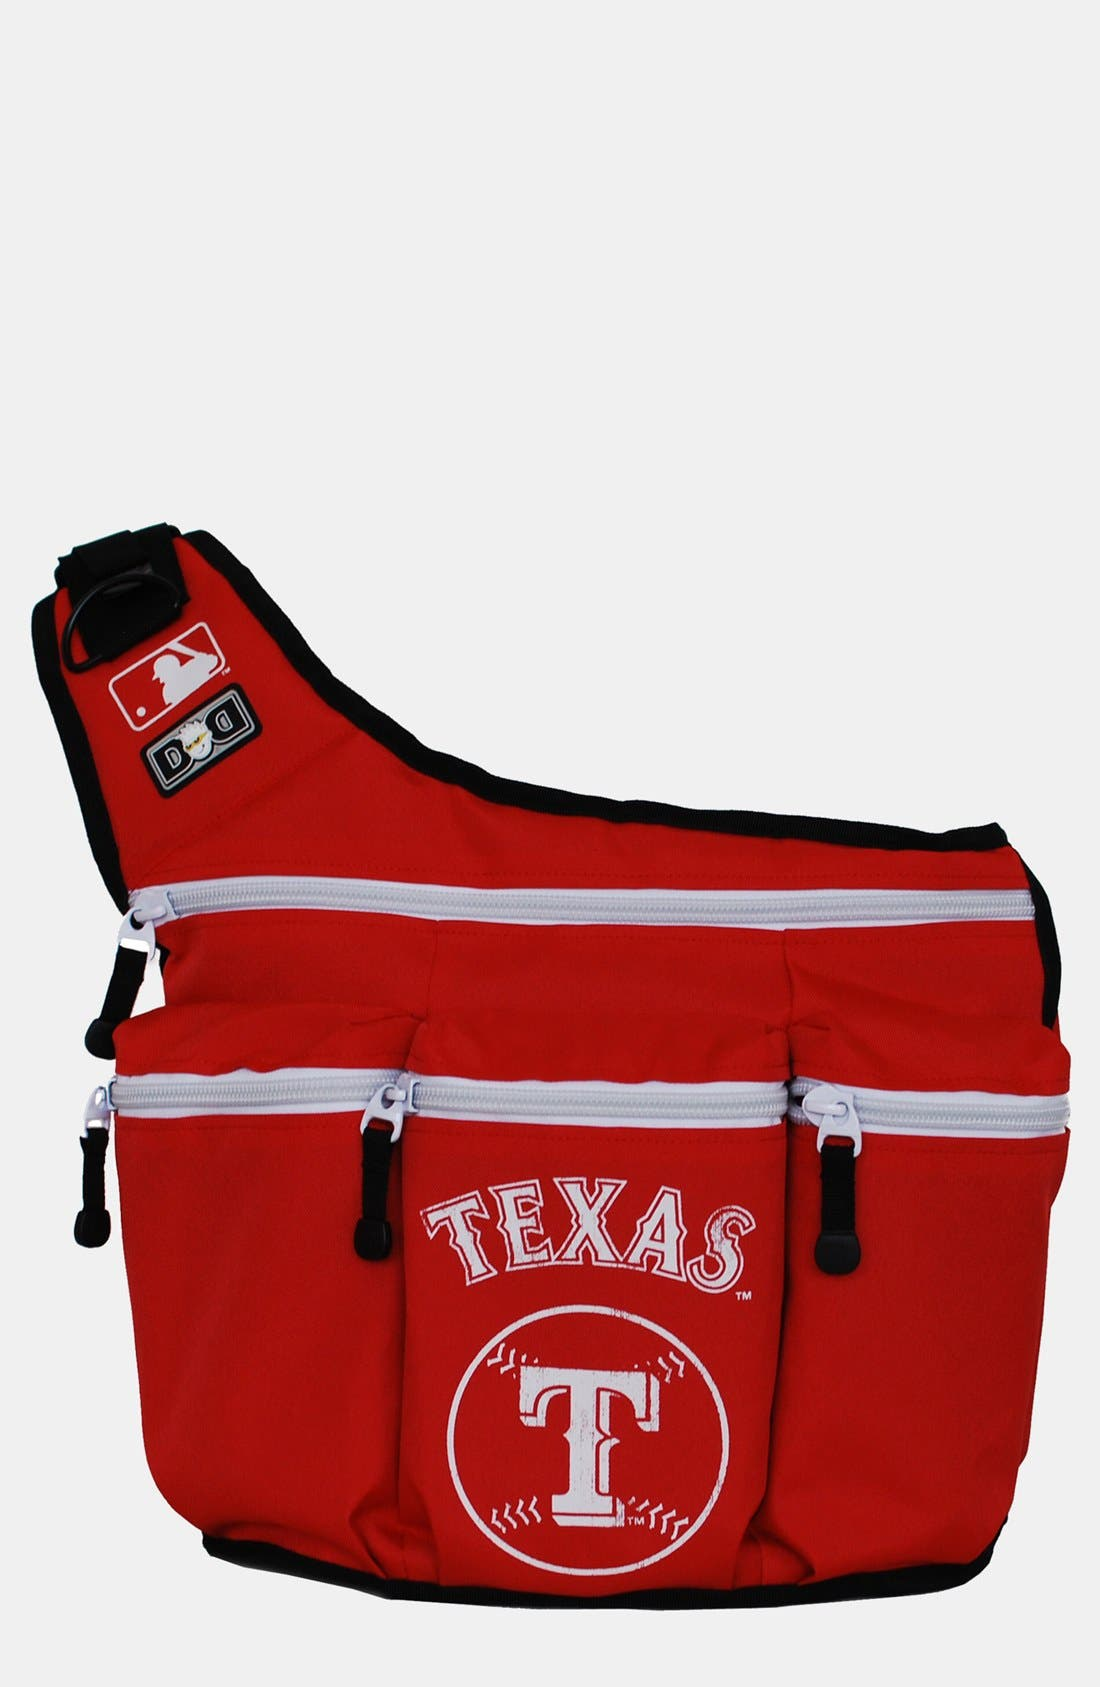 'Texas Rangers' Messenger Diaper Bag,                             Main thumbnail 1, color,                             Red